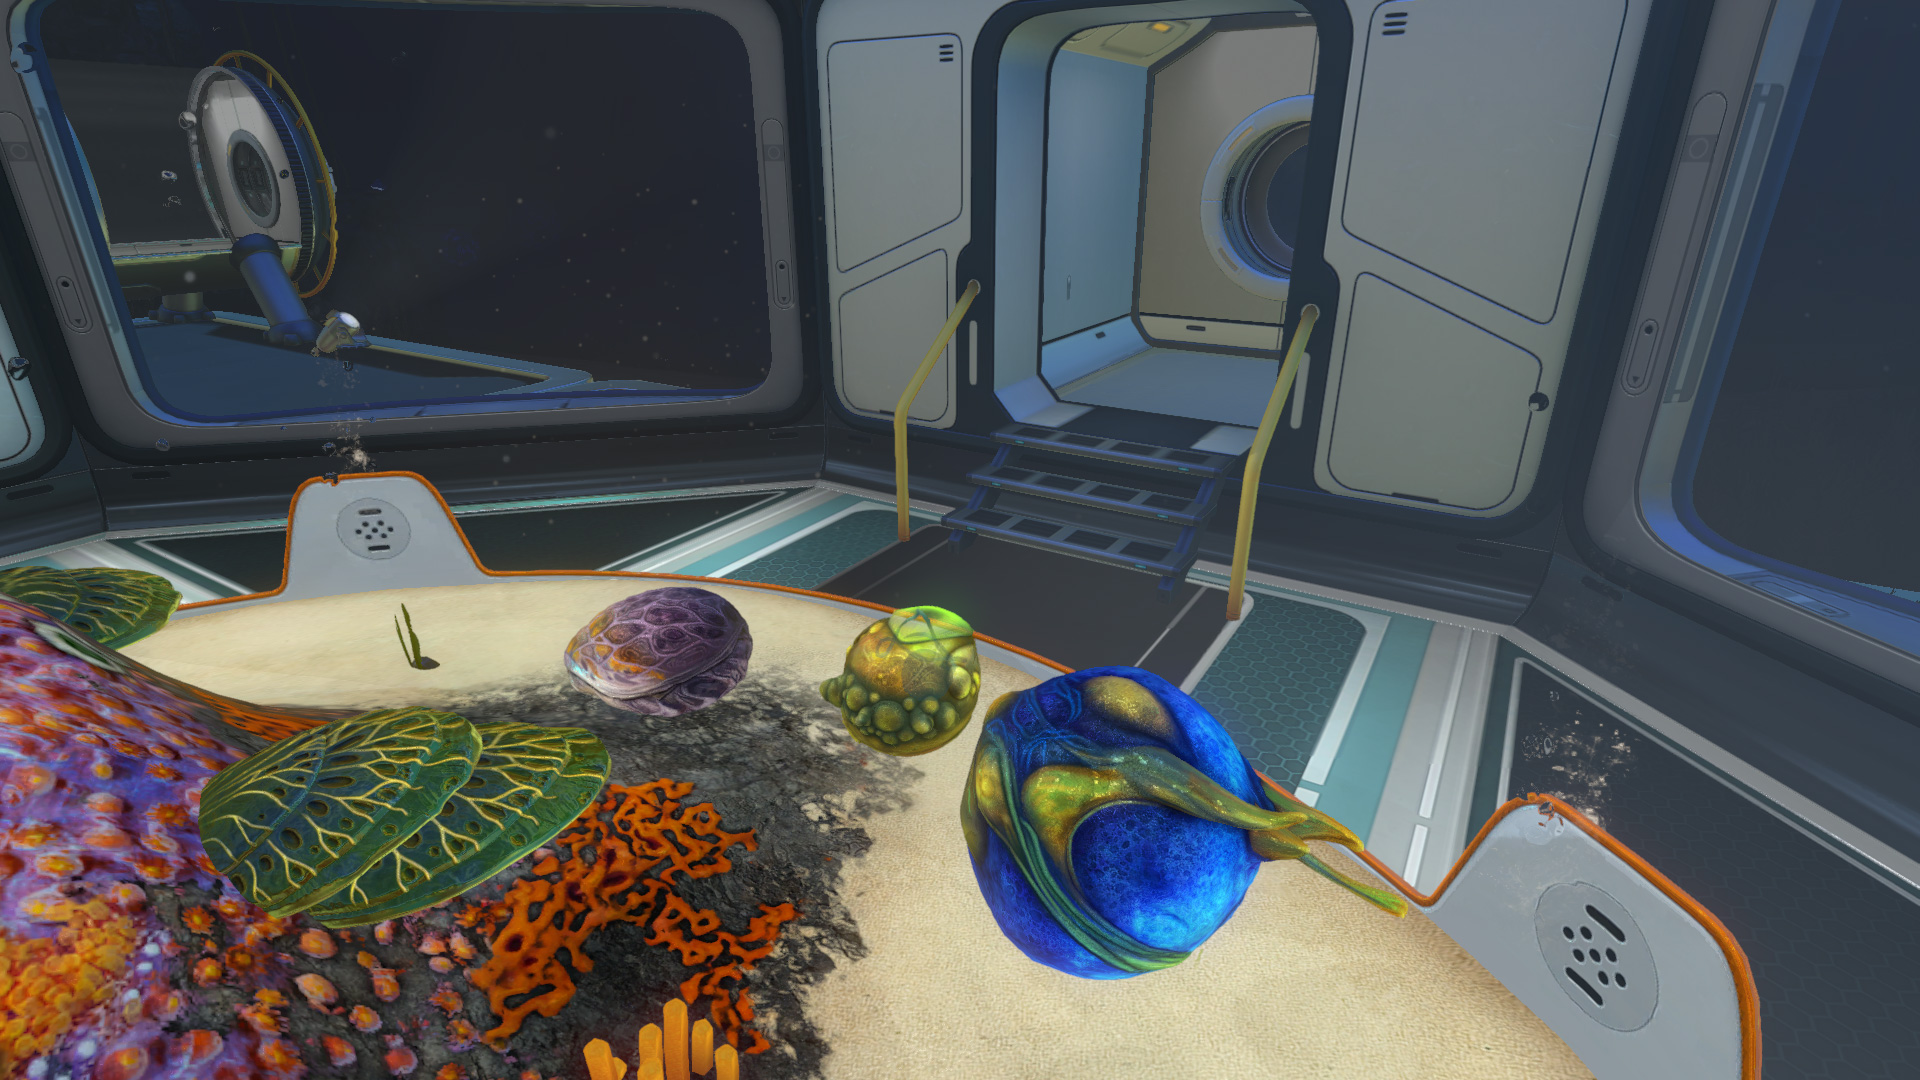 subnautica how to use eggs in contrainment